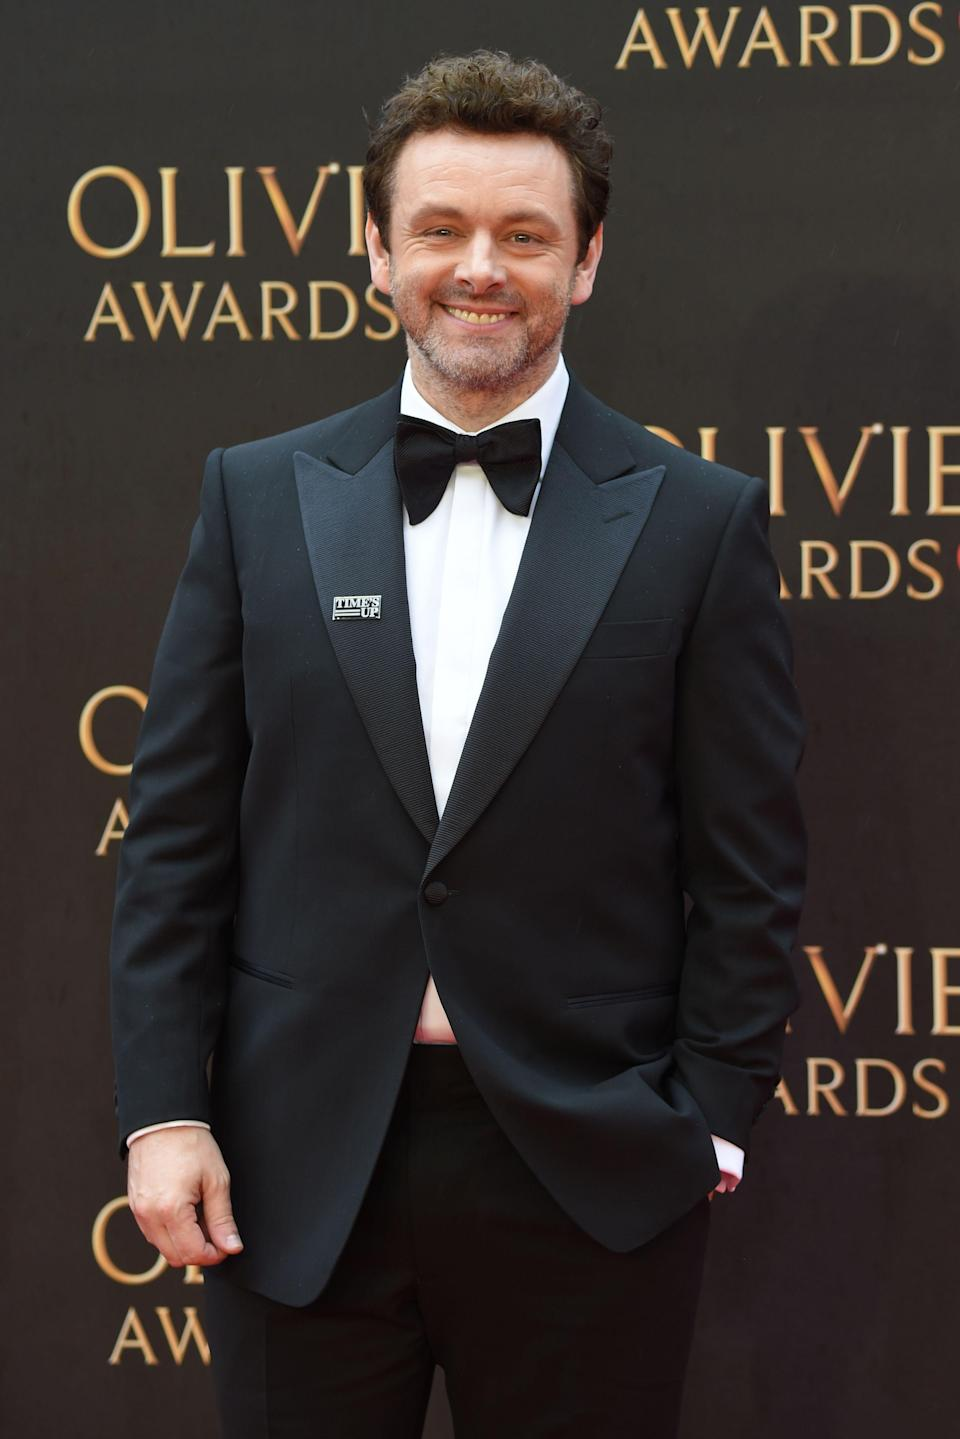 Michael Sheen attends the Olivier Awards in London in 2018.